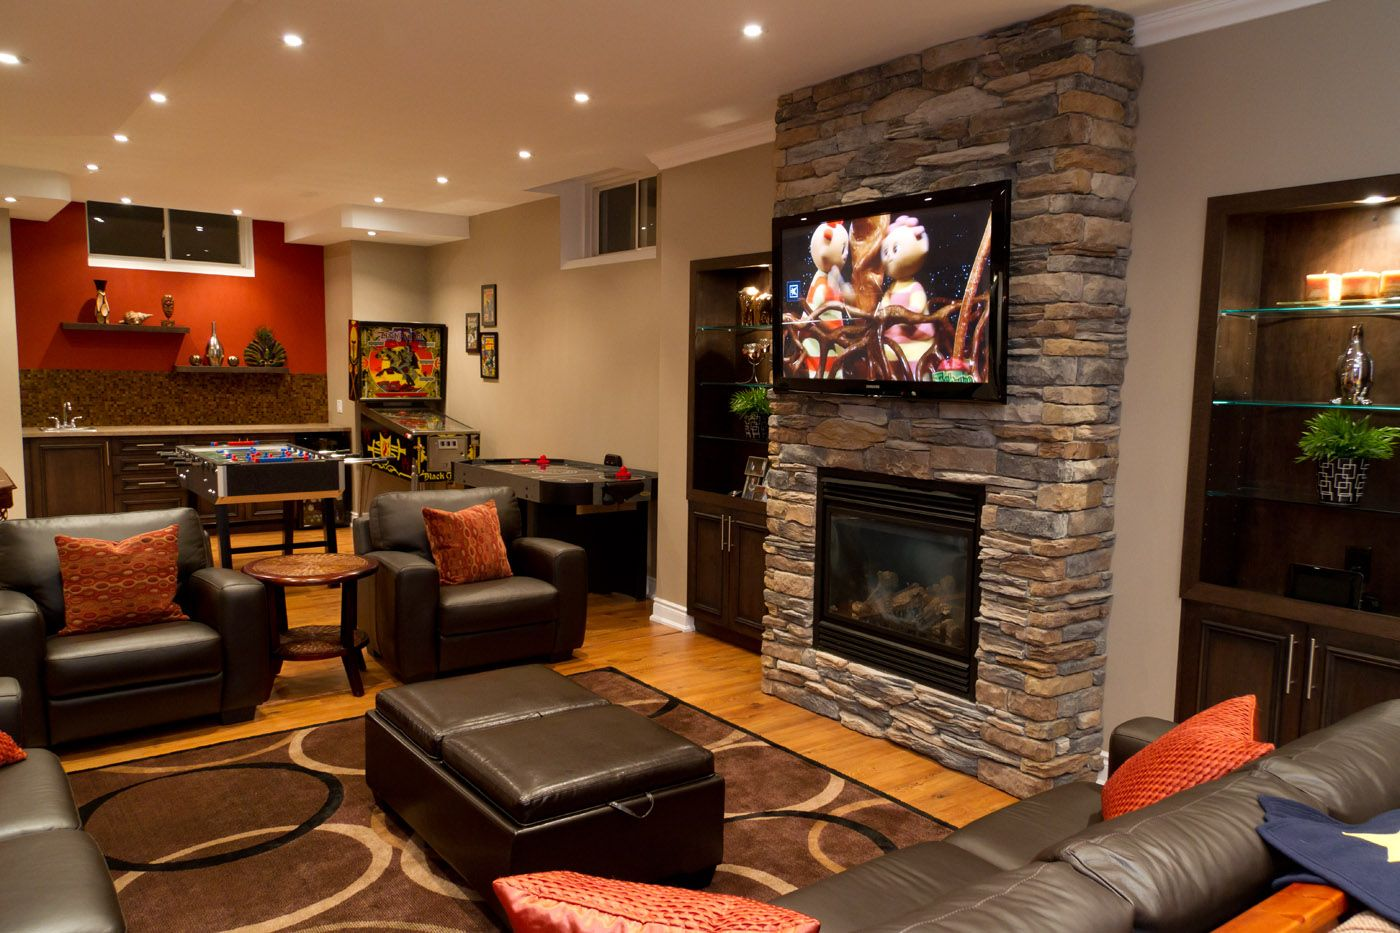 Basement Living Room Designs Extraordinary Basement Playroom Ideas  Finished Basement Basement Renovations Decorating Design